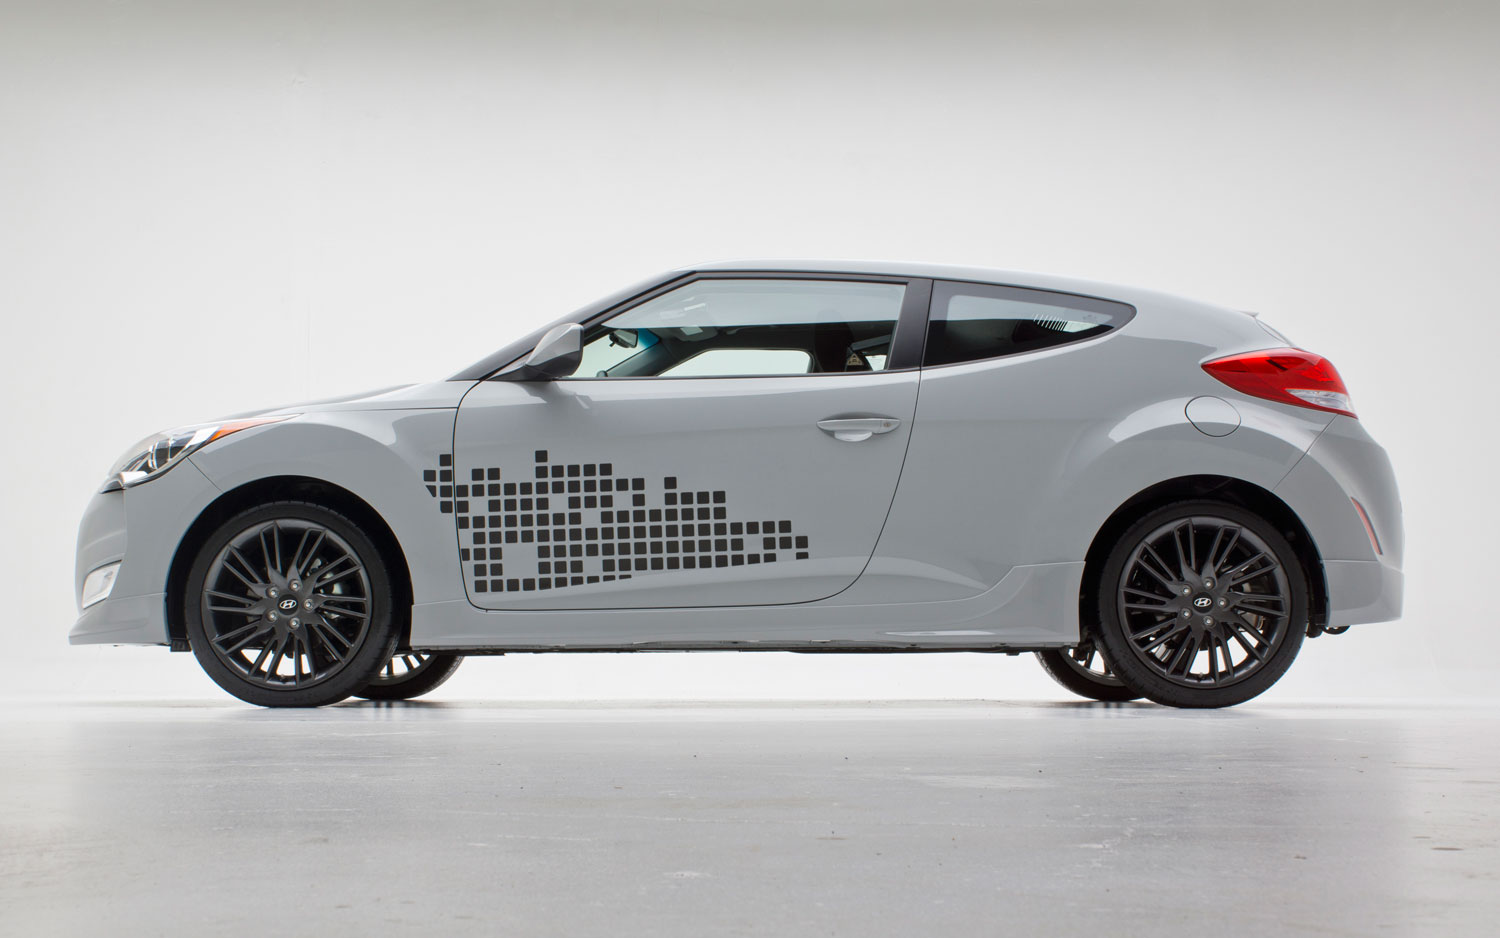 2013 Hyundai Veloster RE:MIX | New cars reviews